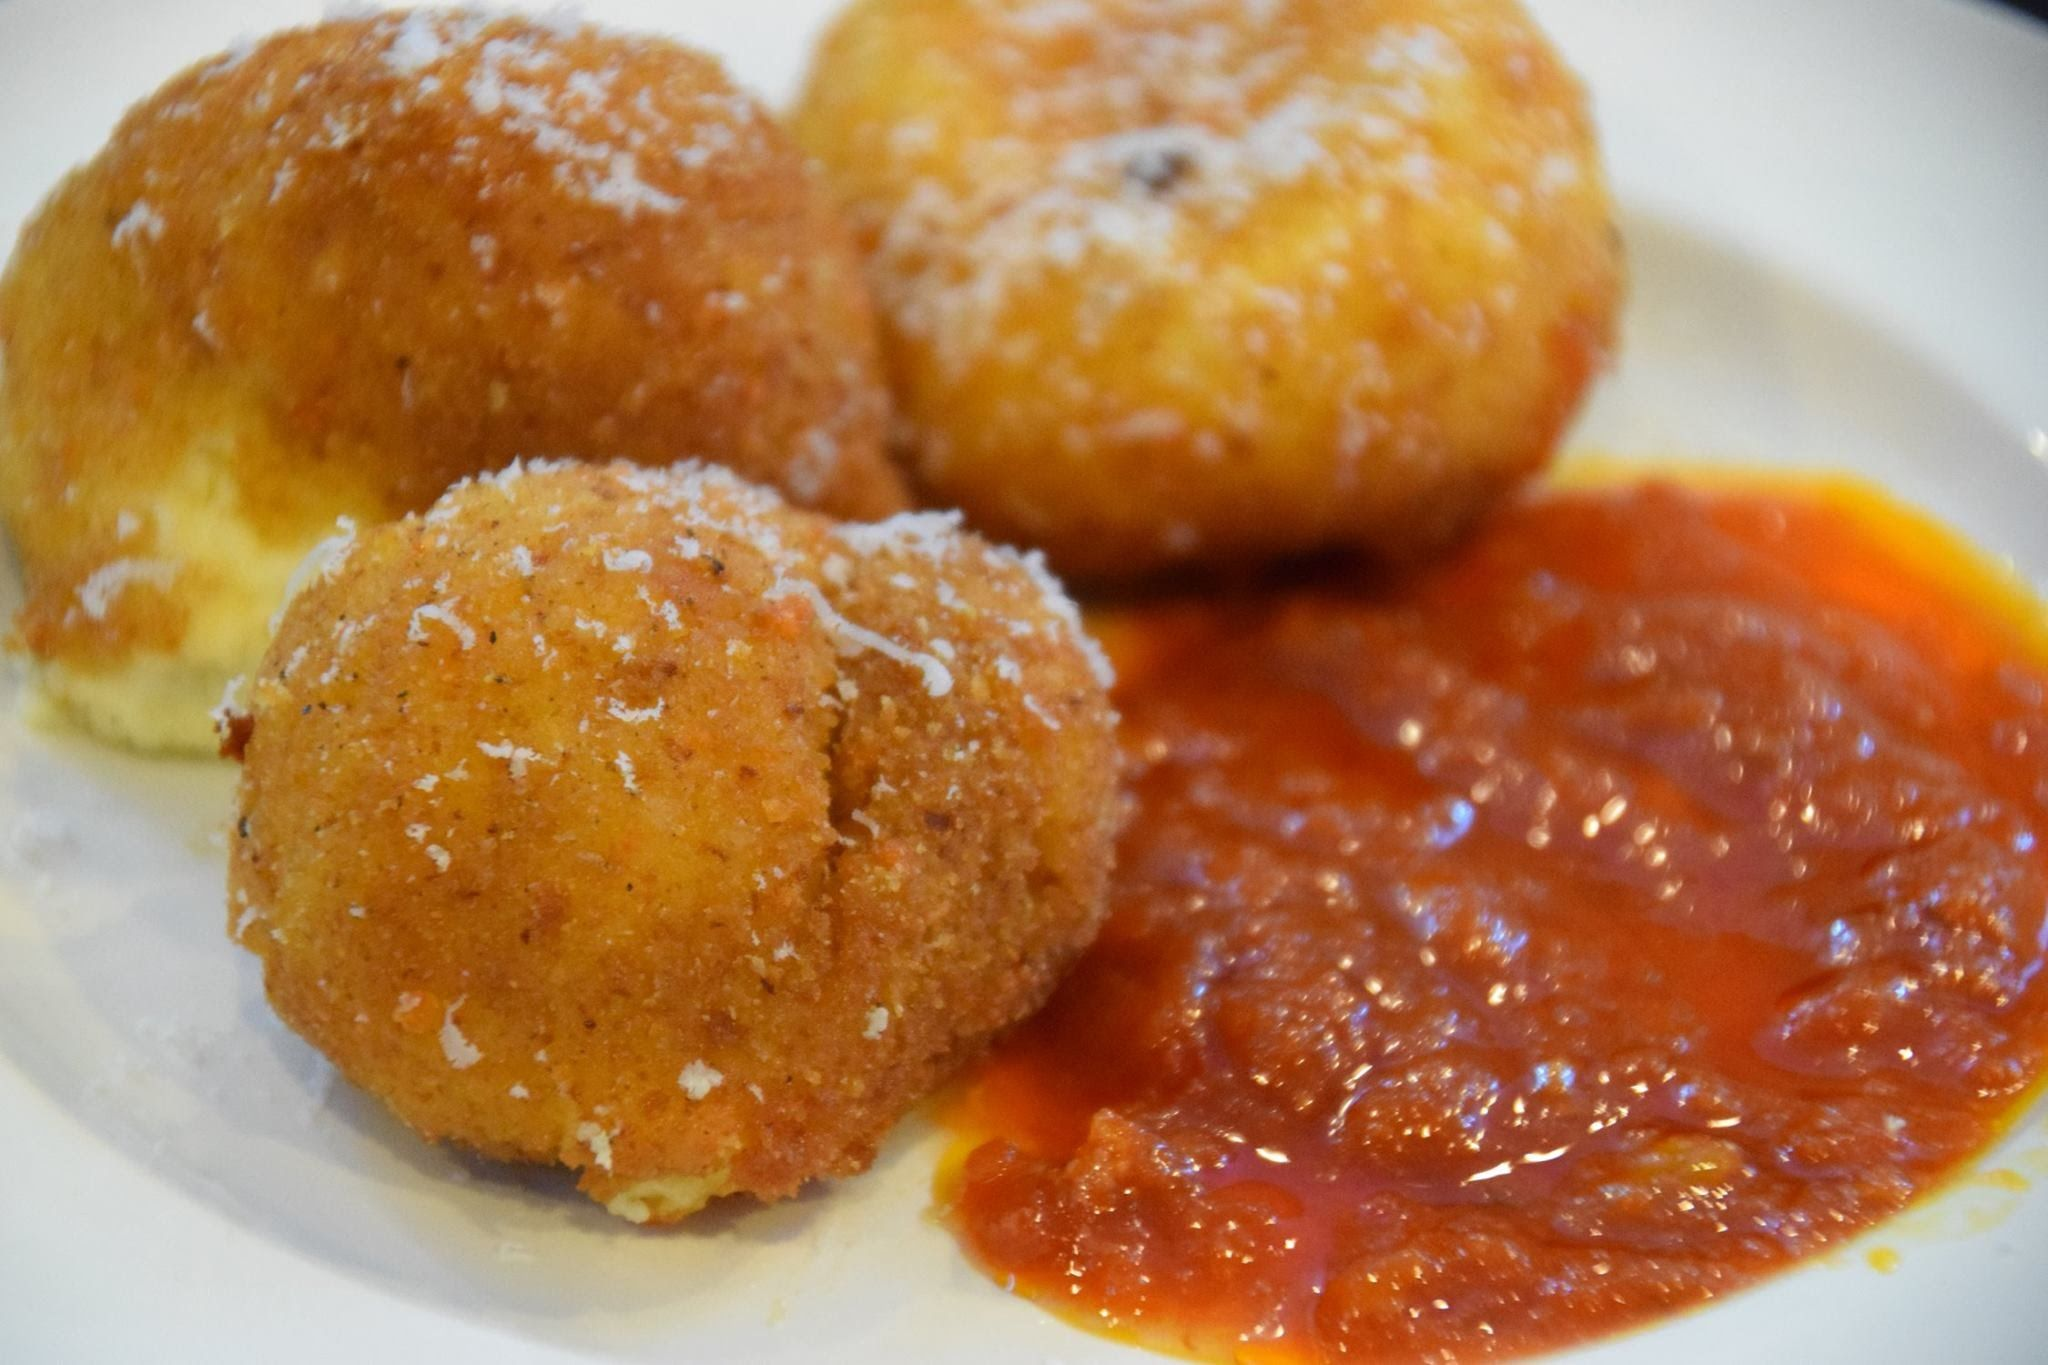 The cold weather equals comfort food try this recipe for delicious food forumfinder Images